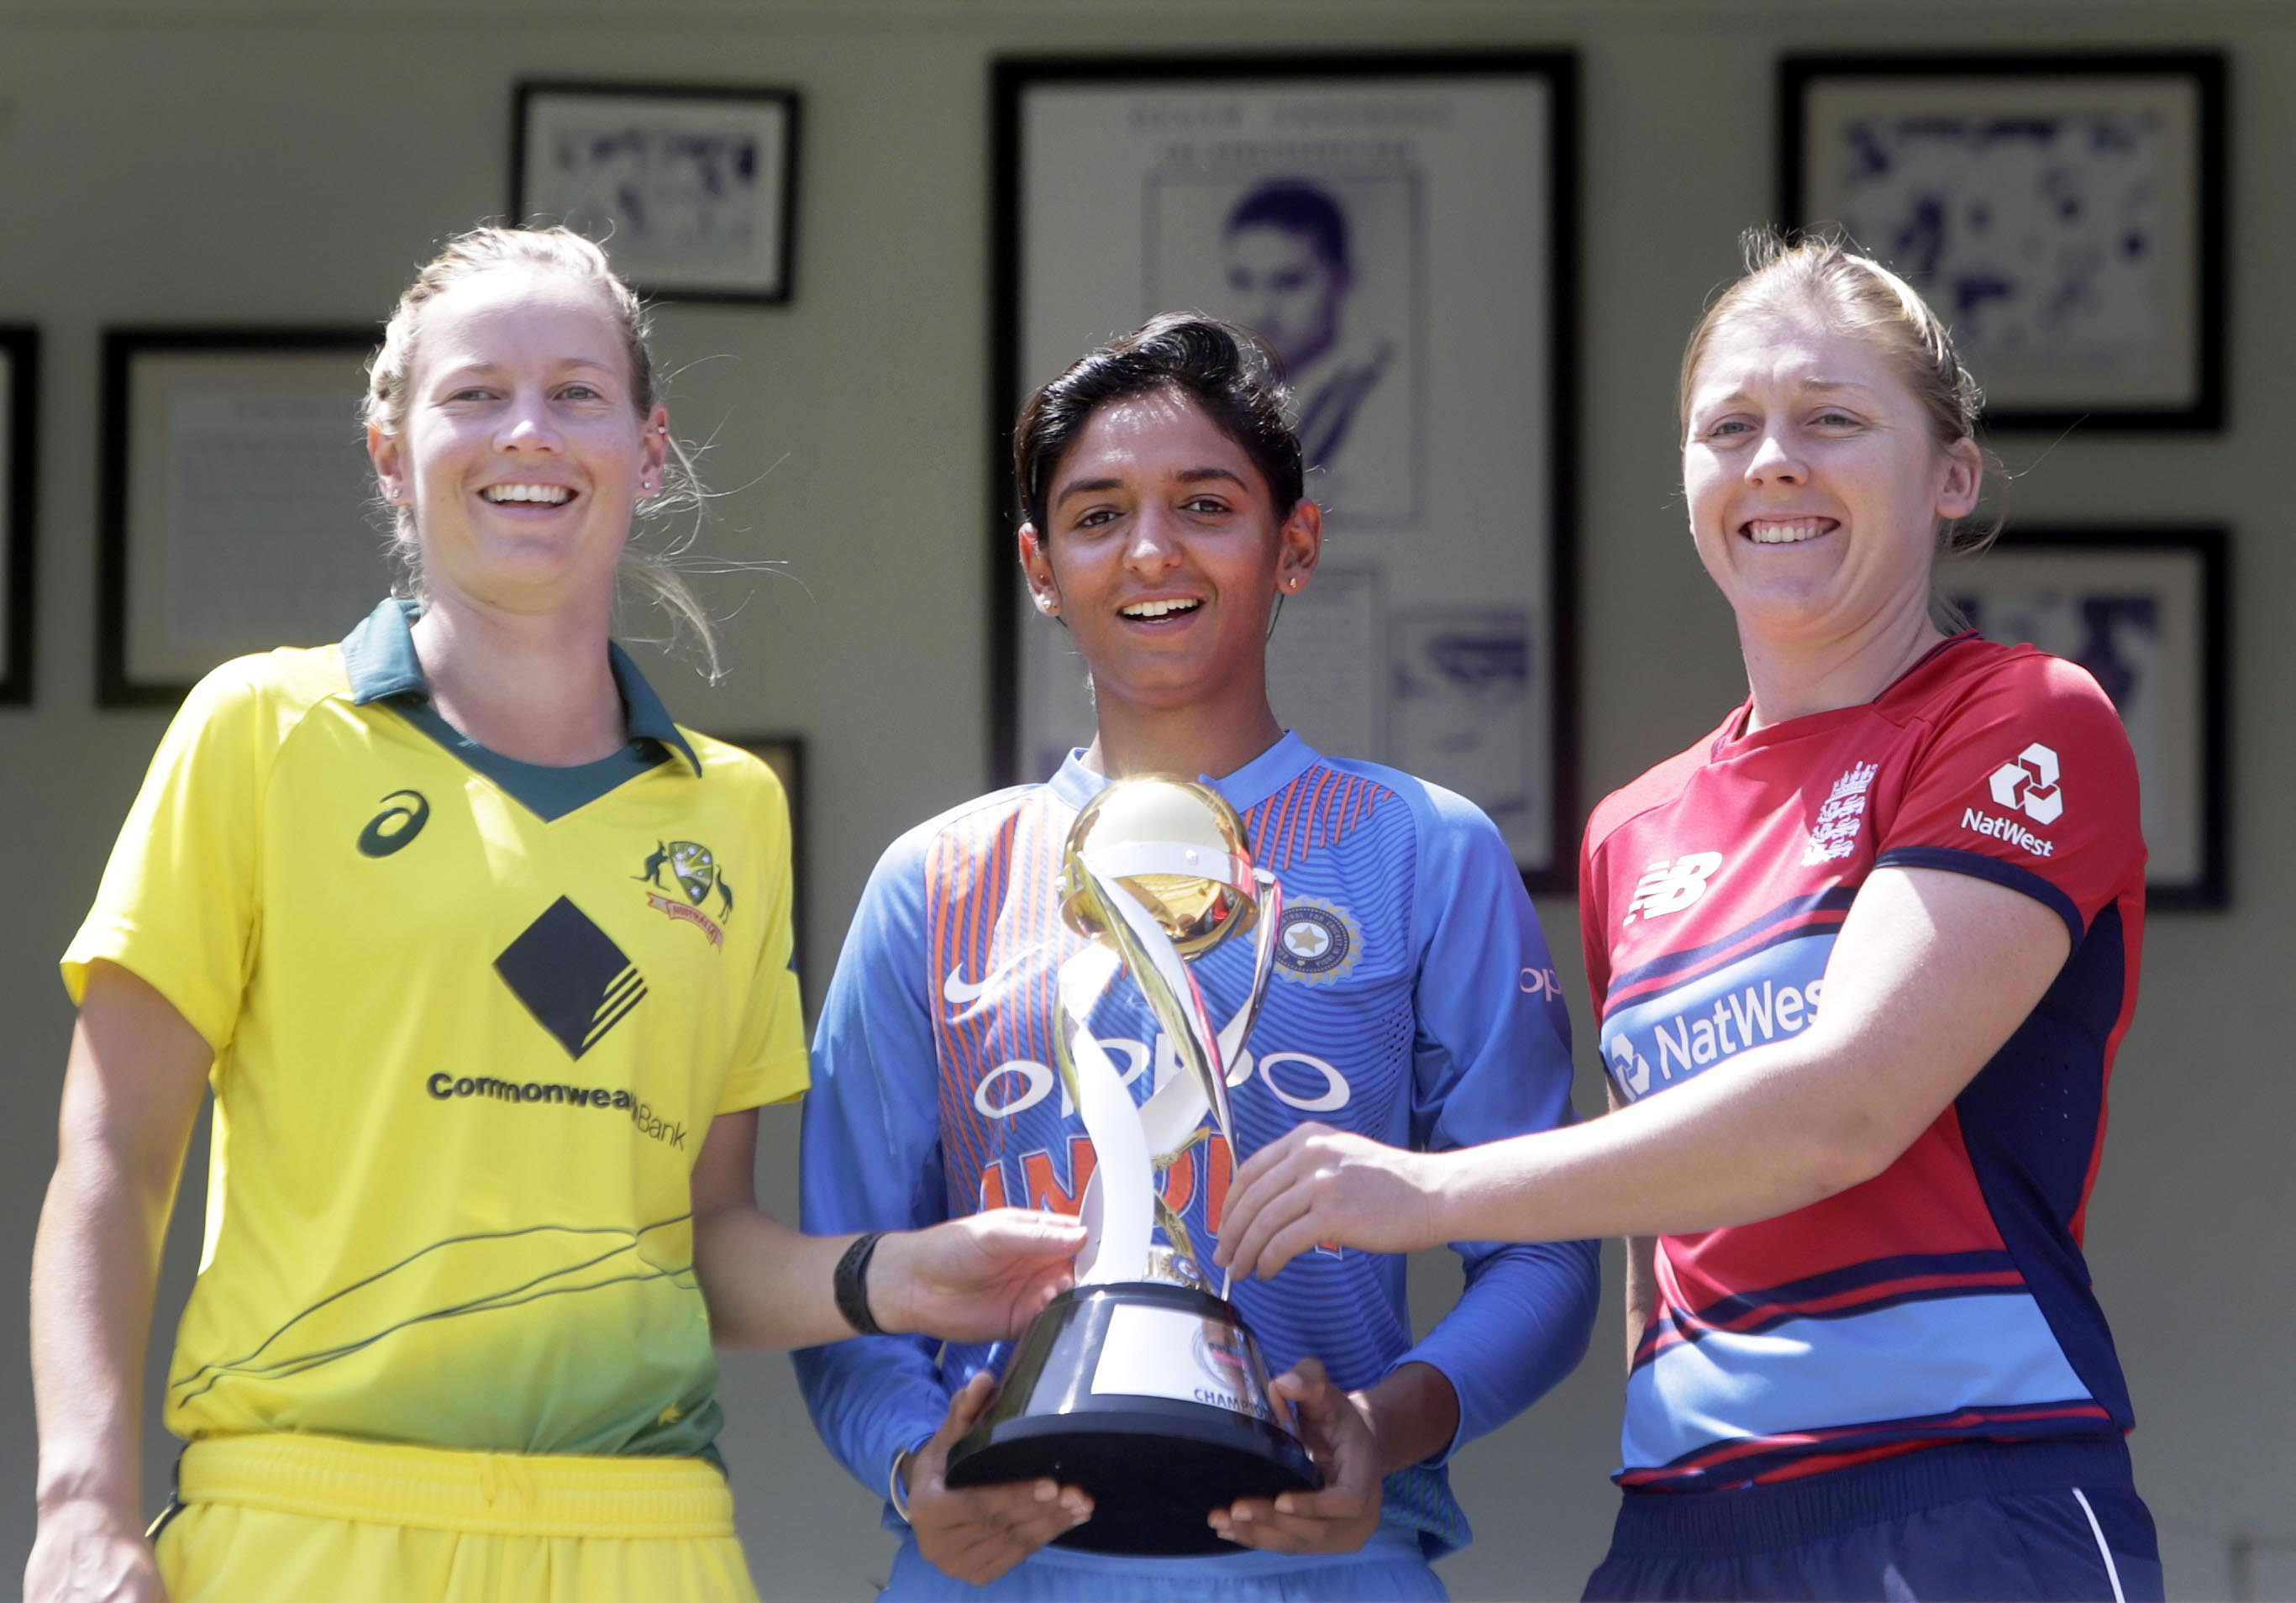 (From left to right) Australia's team captain Meg Lanning, India's team captain Harmanpreet Kaur and England's team captain Heather Knight pose with the Paytm Women's Tri-Series trophy in Mumbai, India on Wednesday.